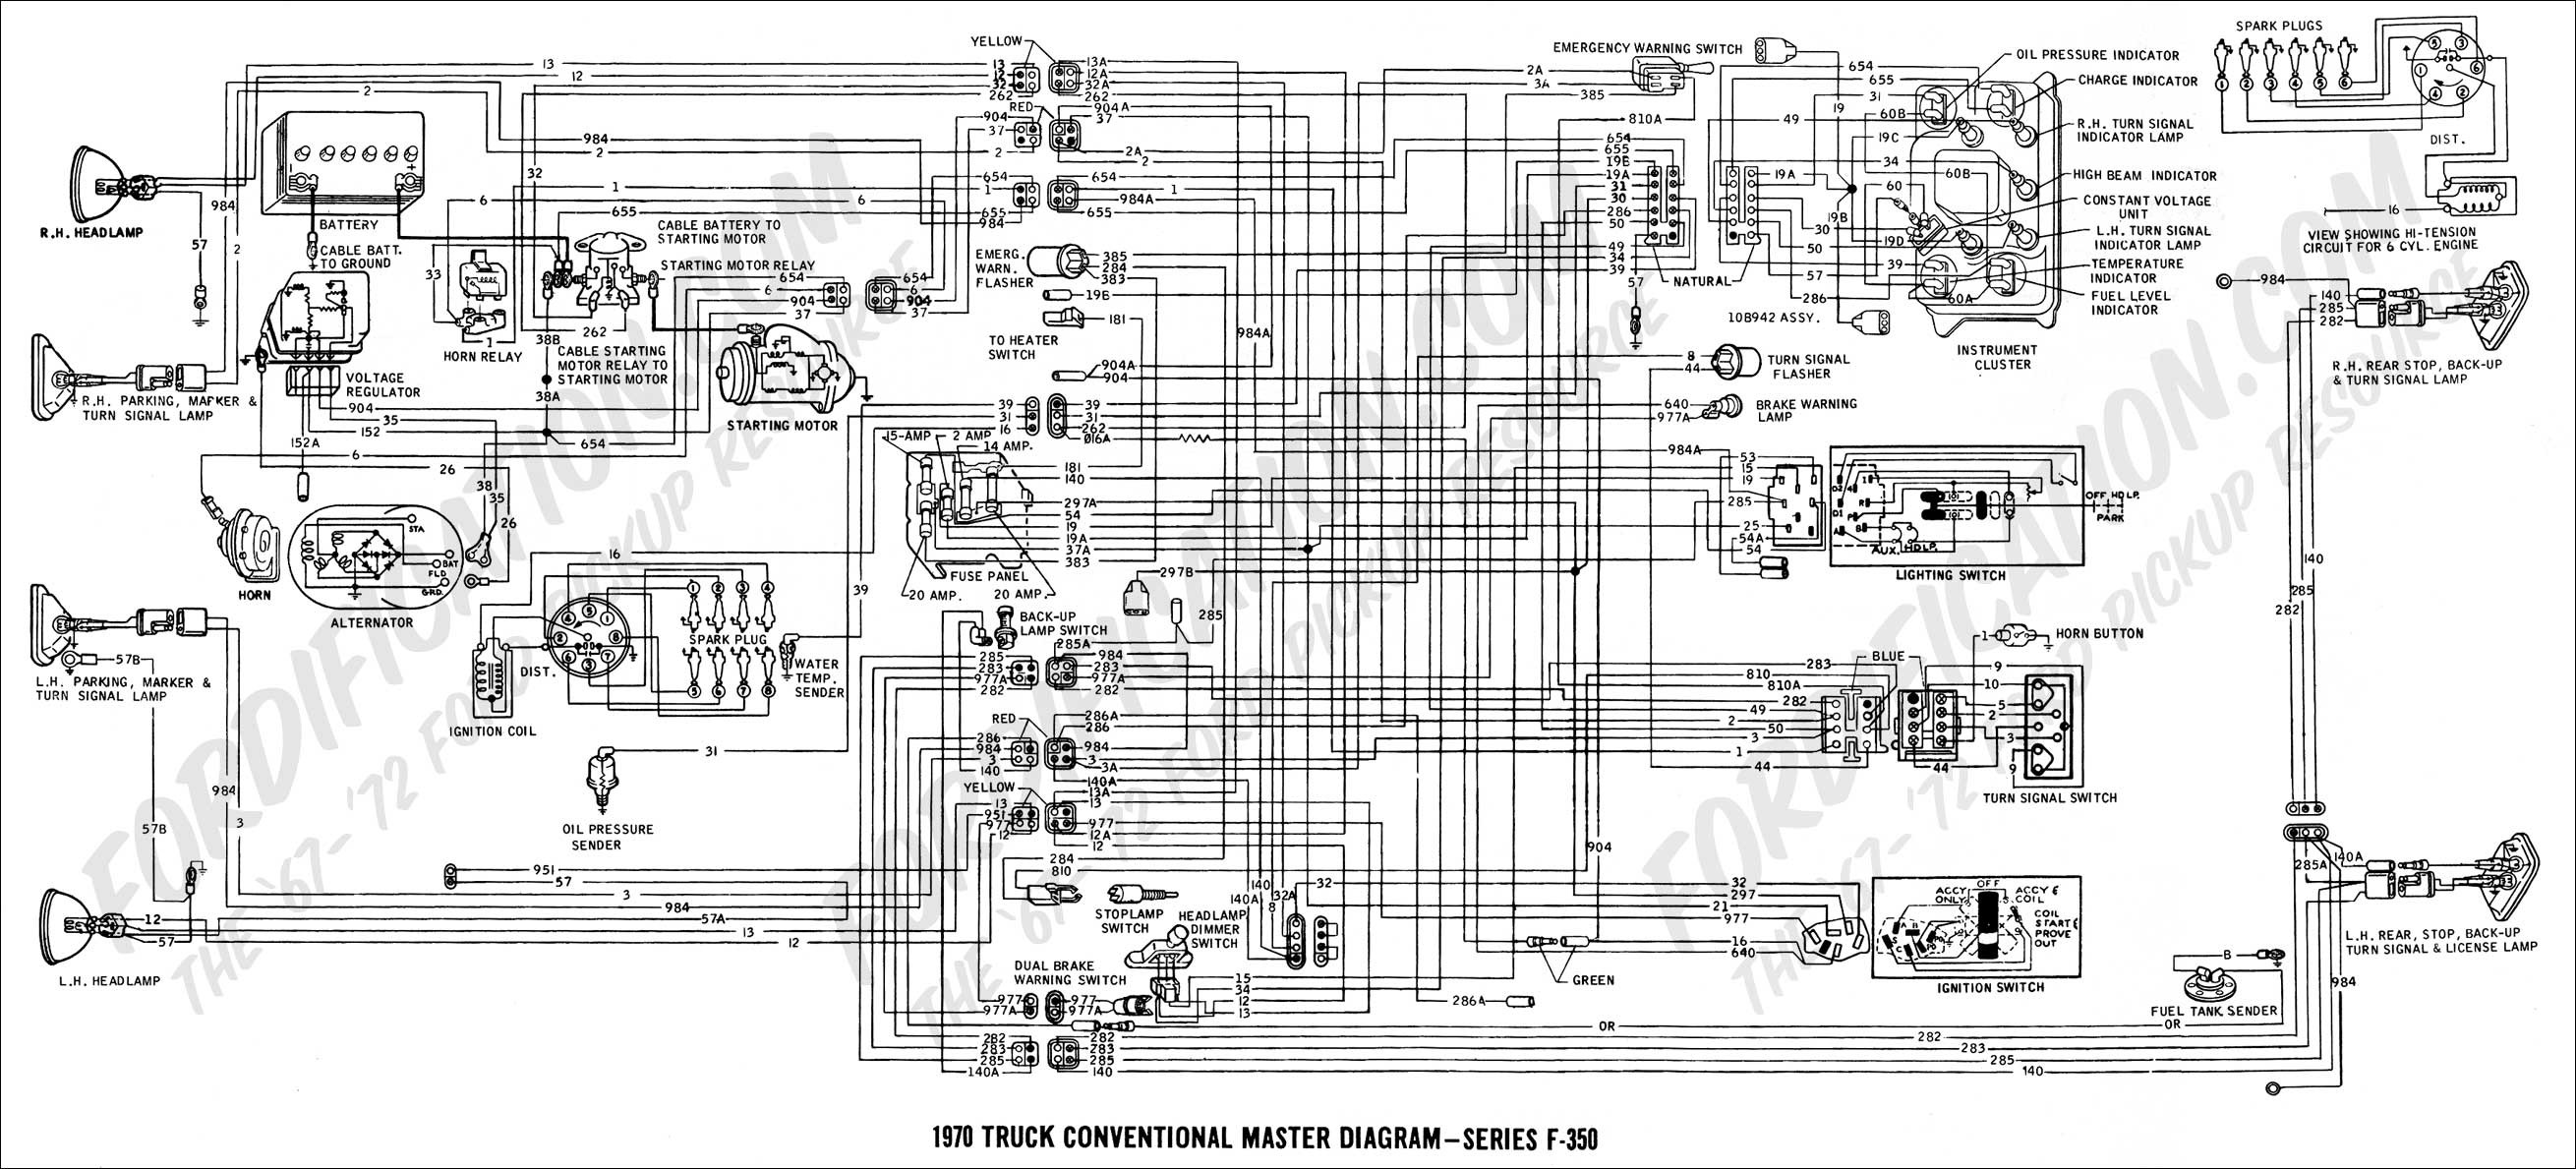 1968 Chevy C10 Wiring Diagram Schematic Diagrams Chevrolet 1969 Gm For 1978 C 10 Pickup